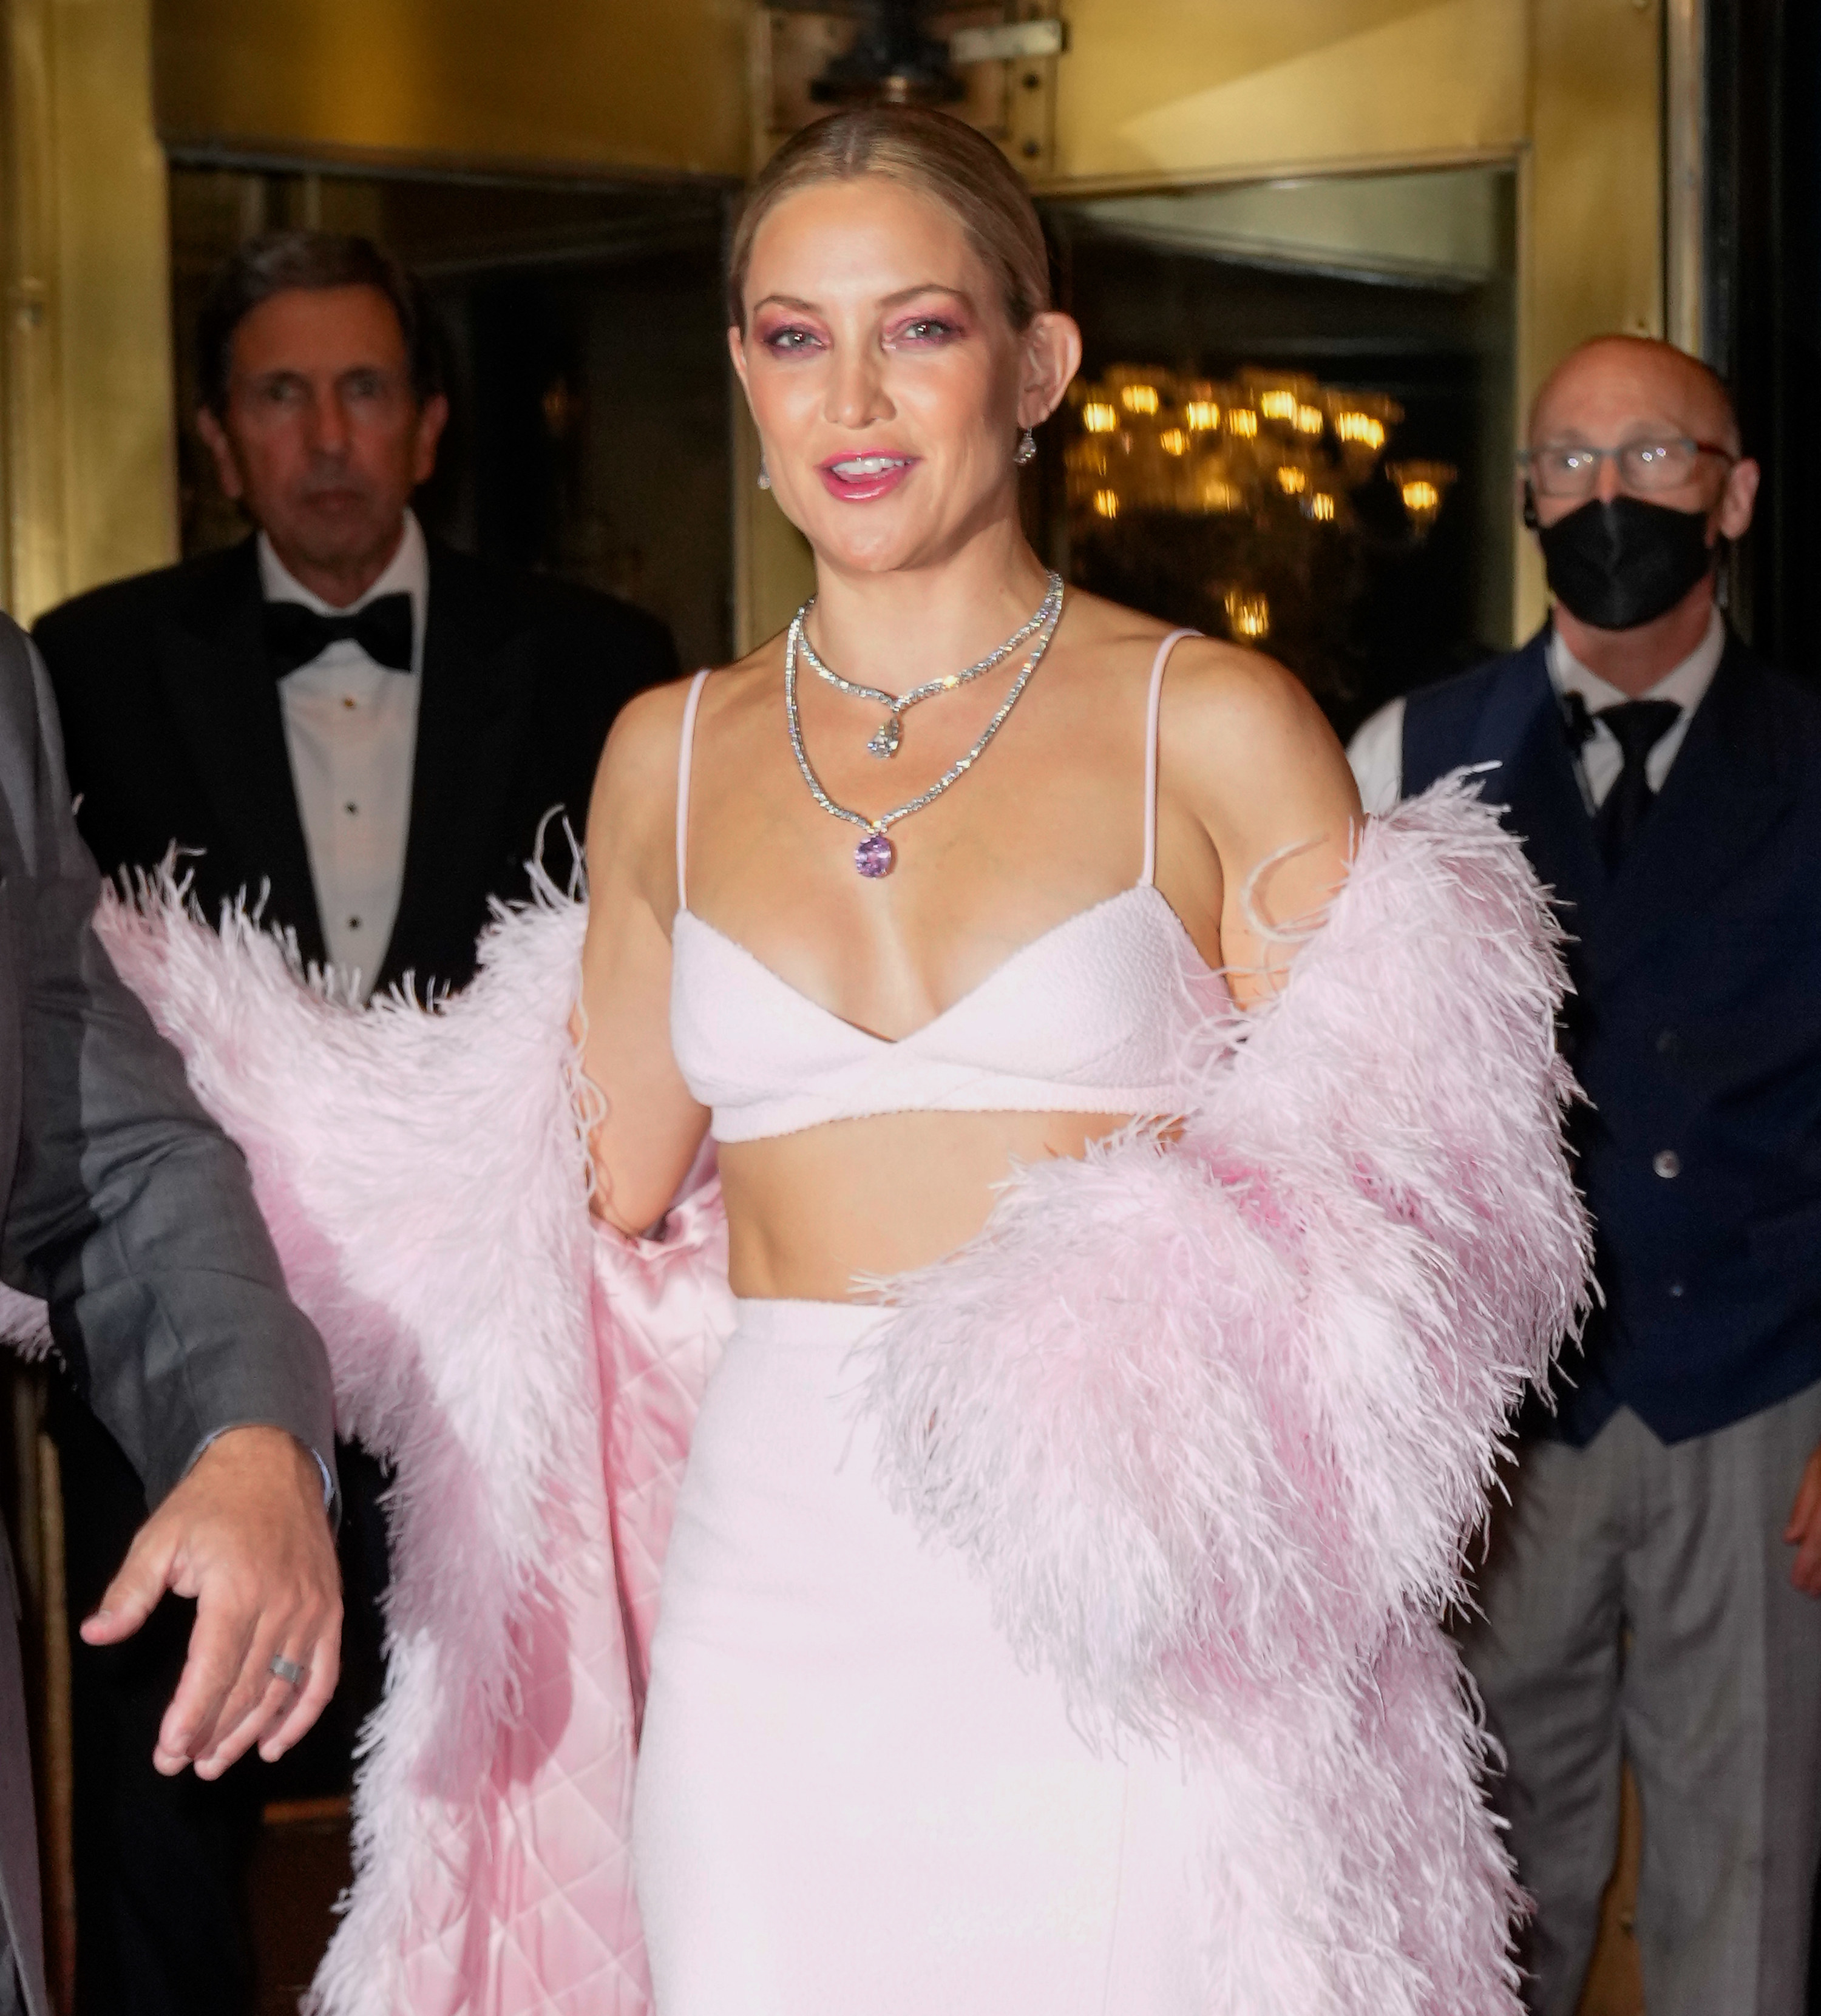 Kate walking at an event in a crop top, skirt, and matching feather jacket